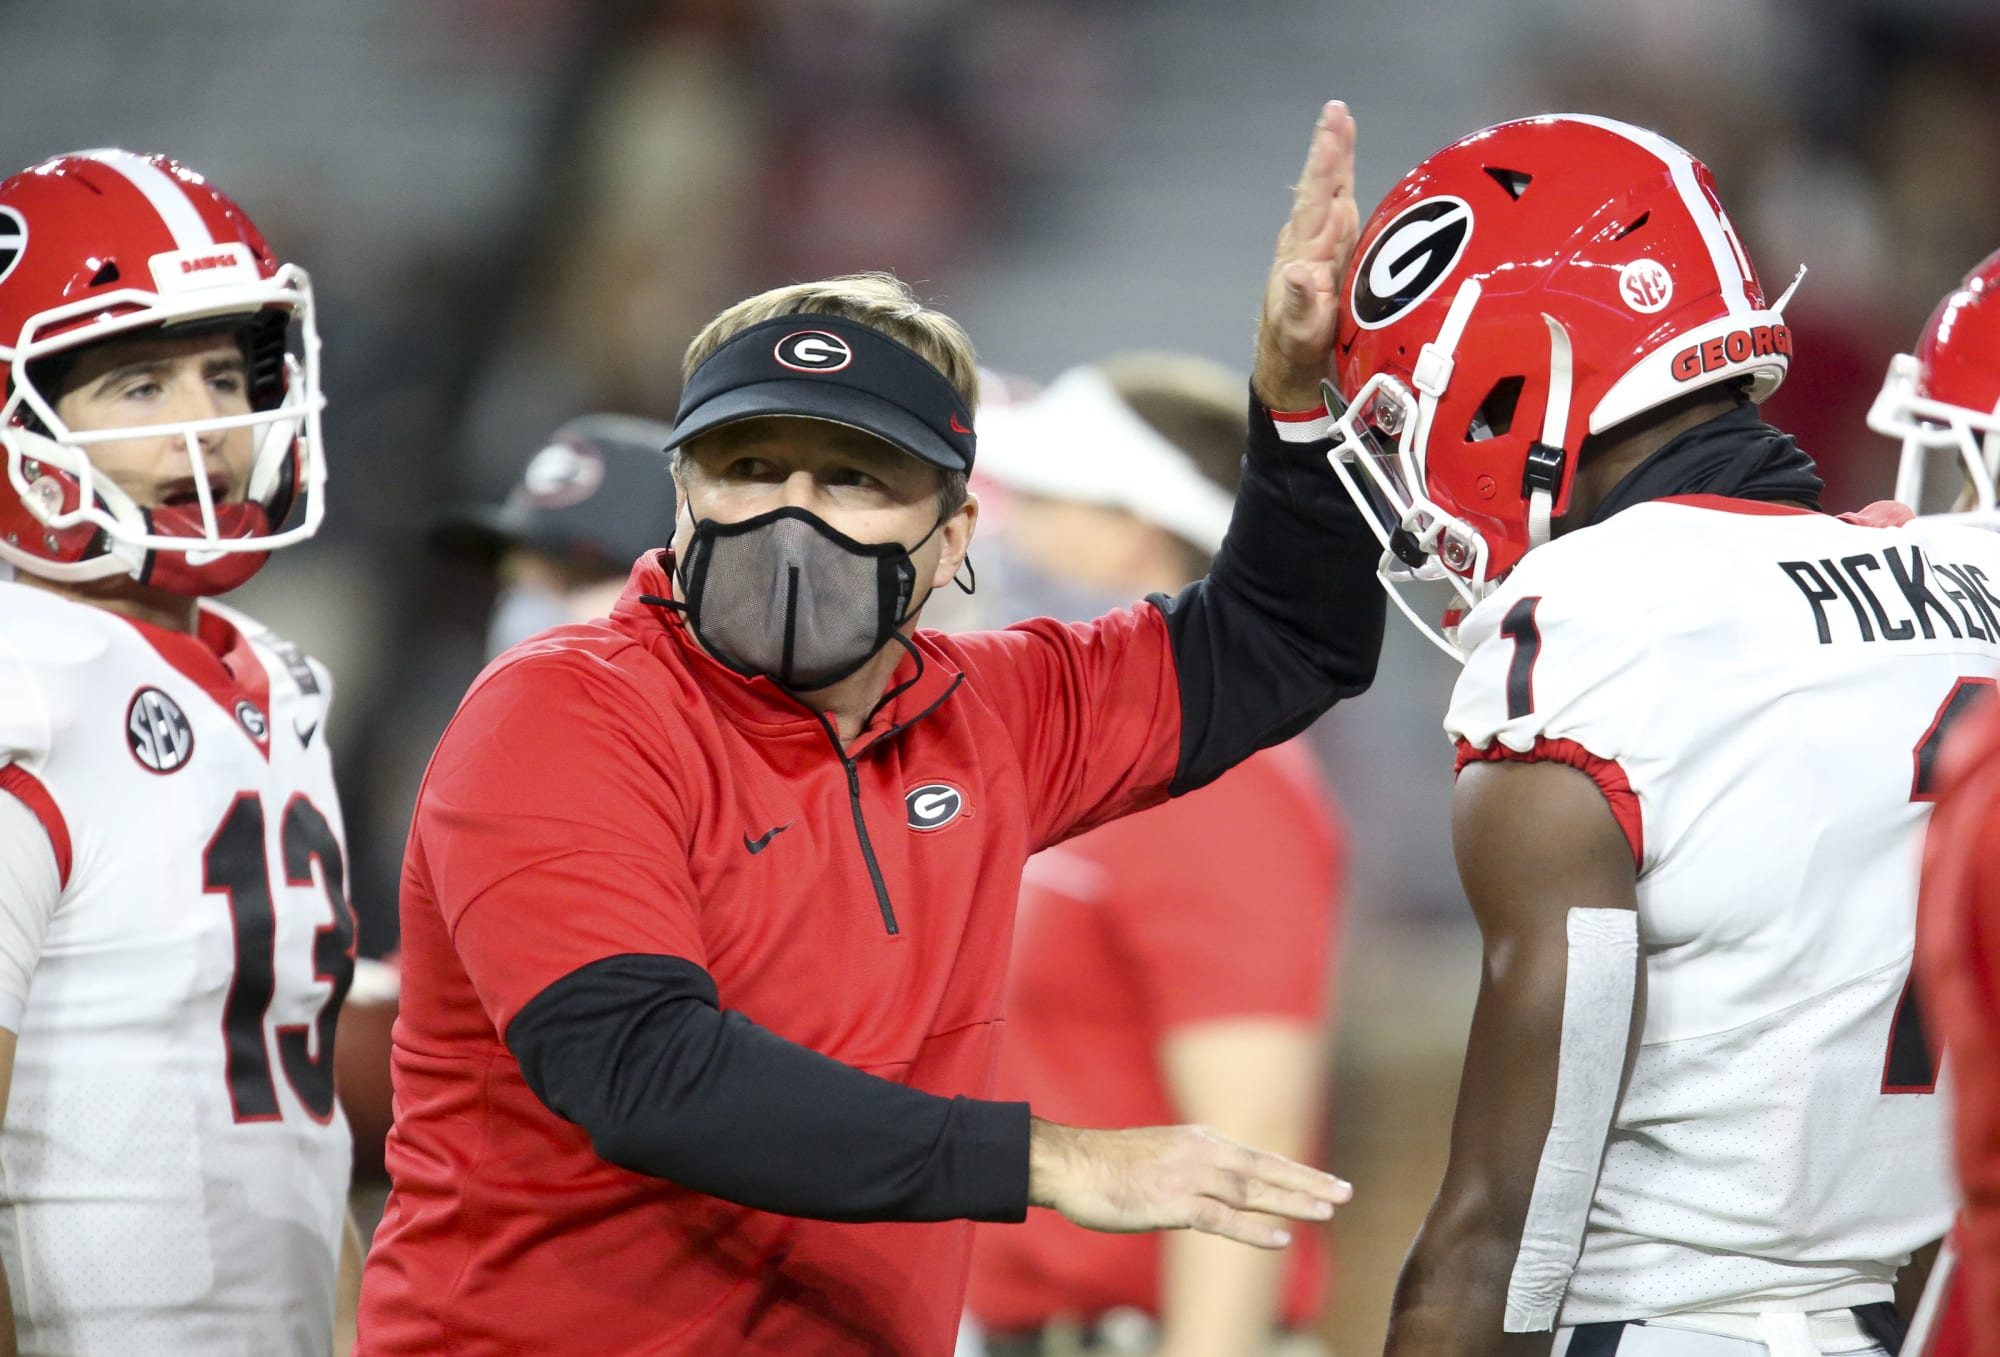 Georgia football's latest four-star commit has Dawgs primed for top-five finish